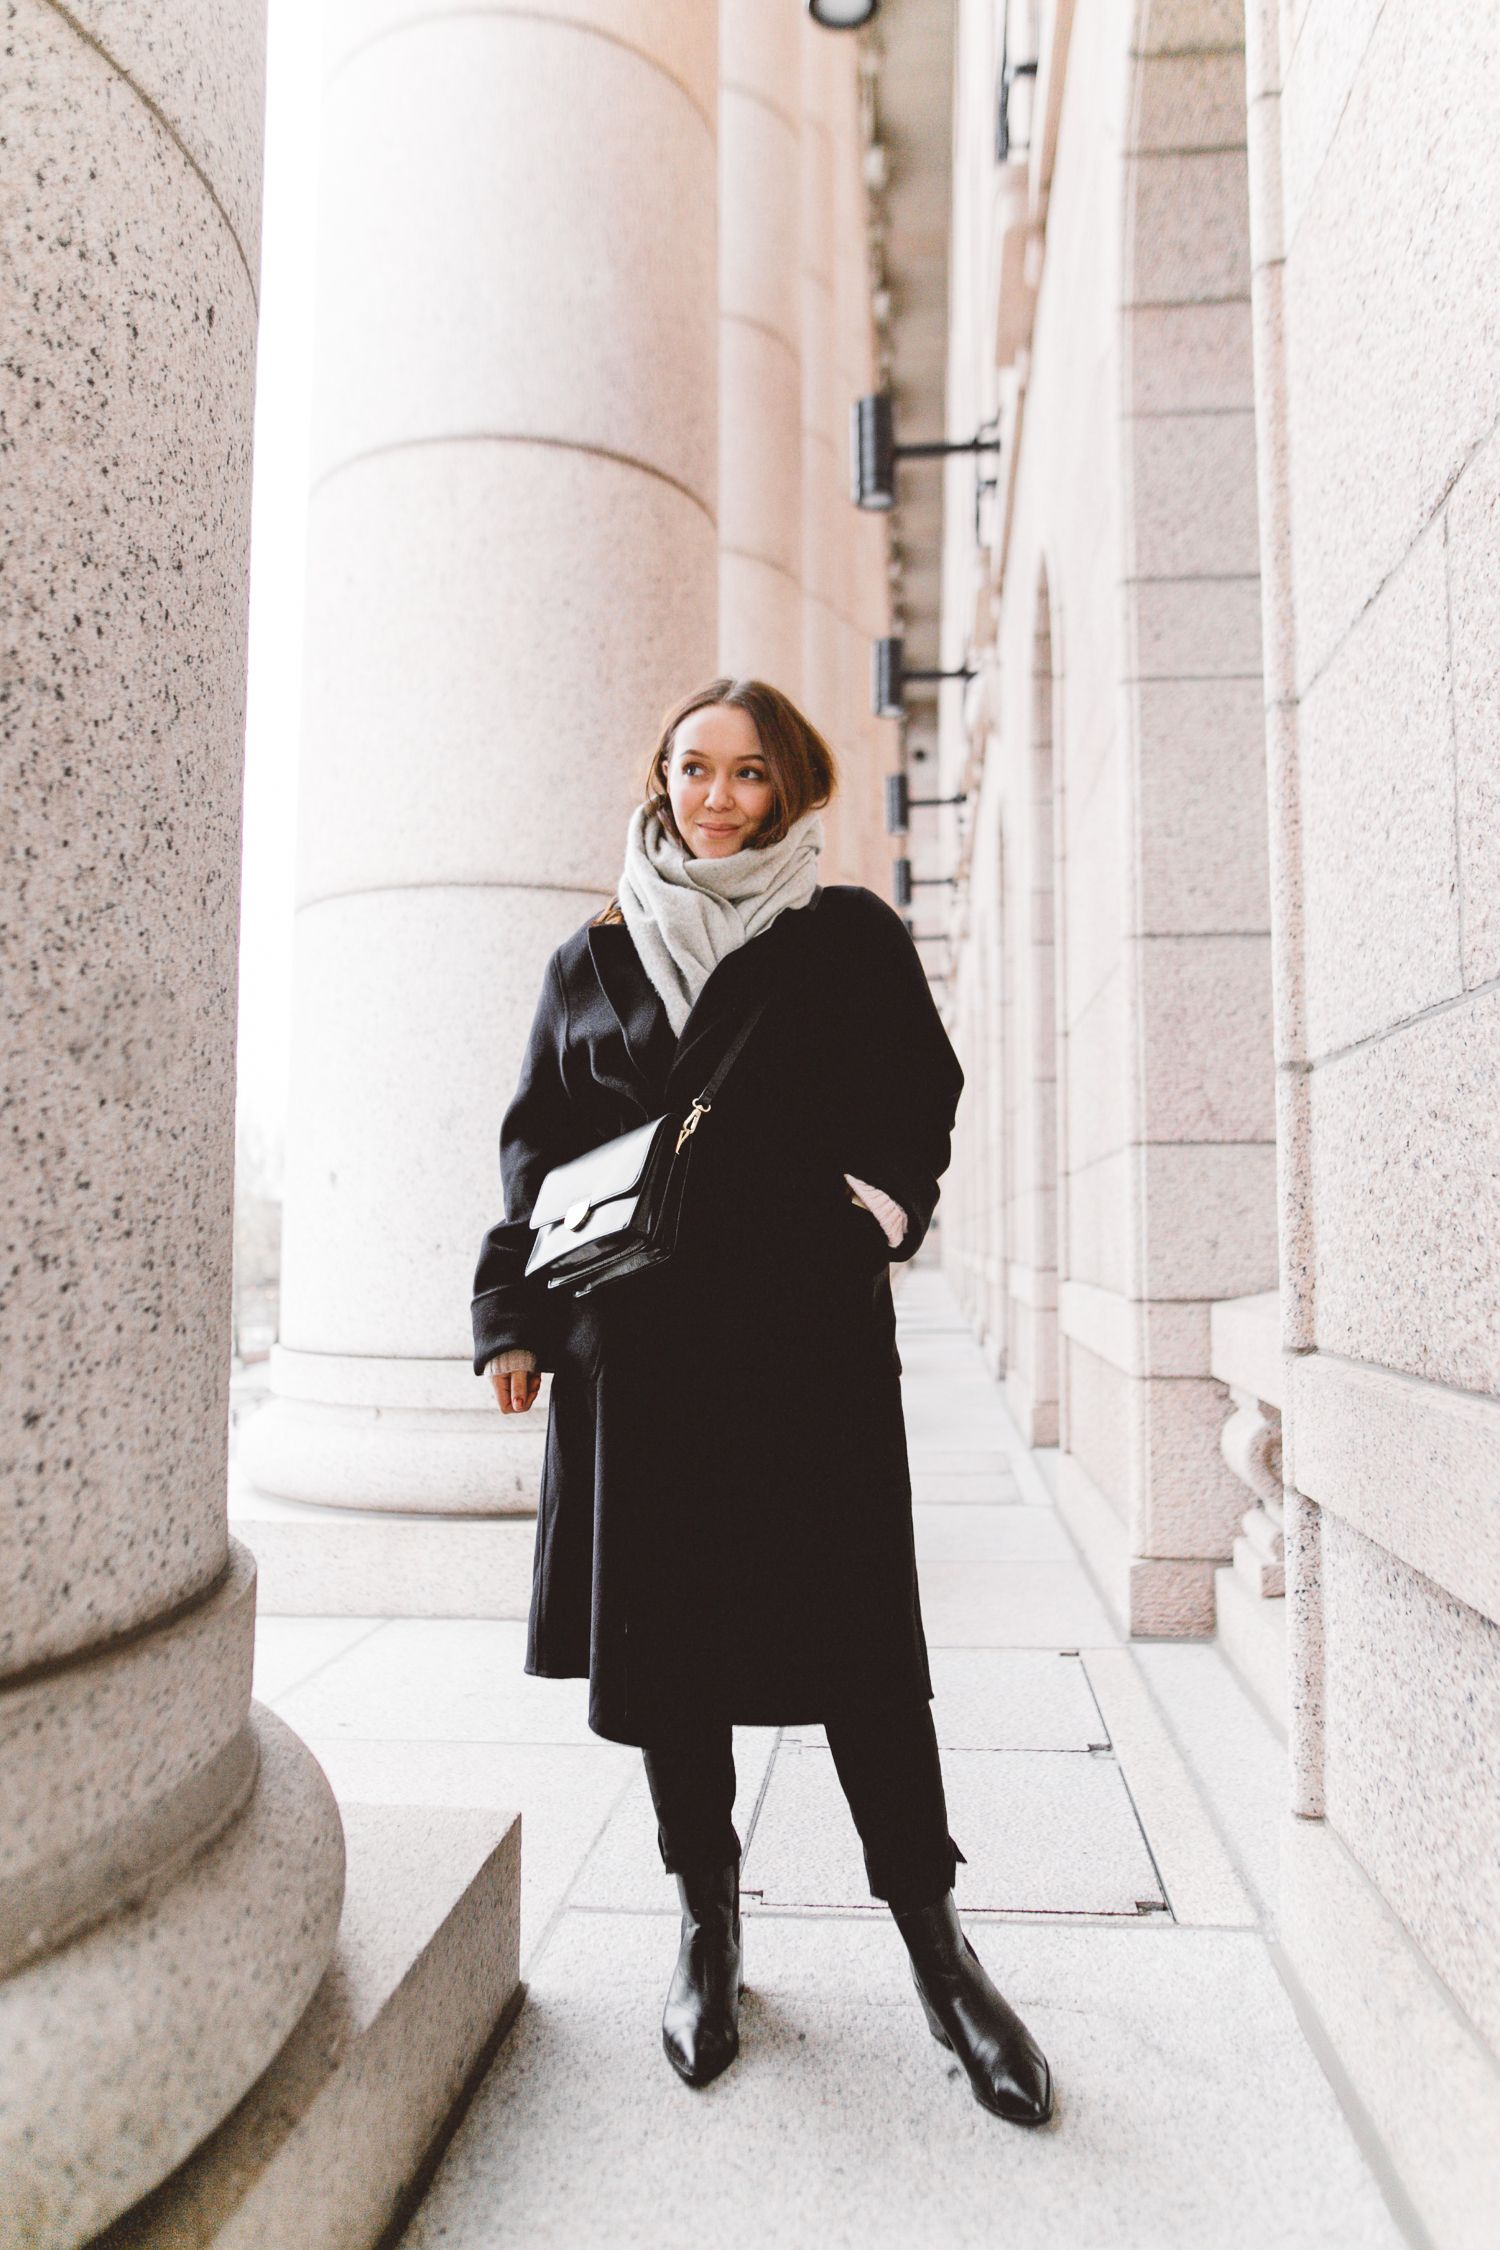 Other Stories Scandinavian Fashion Scandinavian Style Winter Fashion Black Cashmere Coat H M Scandinavian Fashion Black Fashion Black Coat Outfit Winter